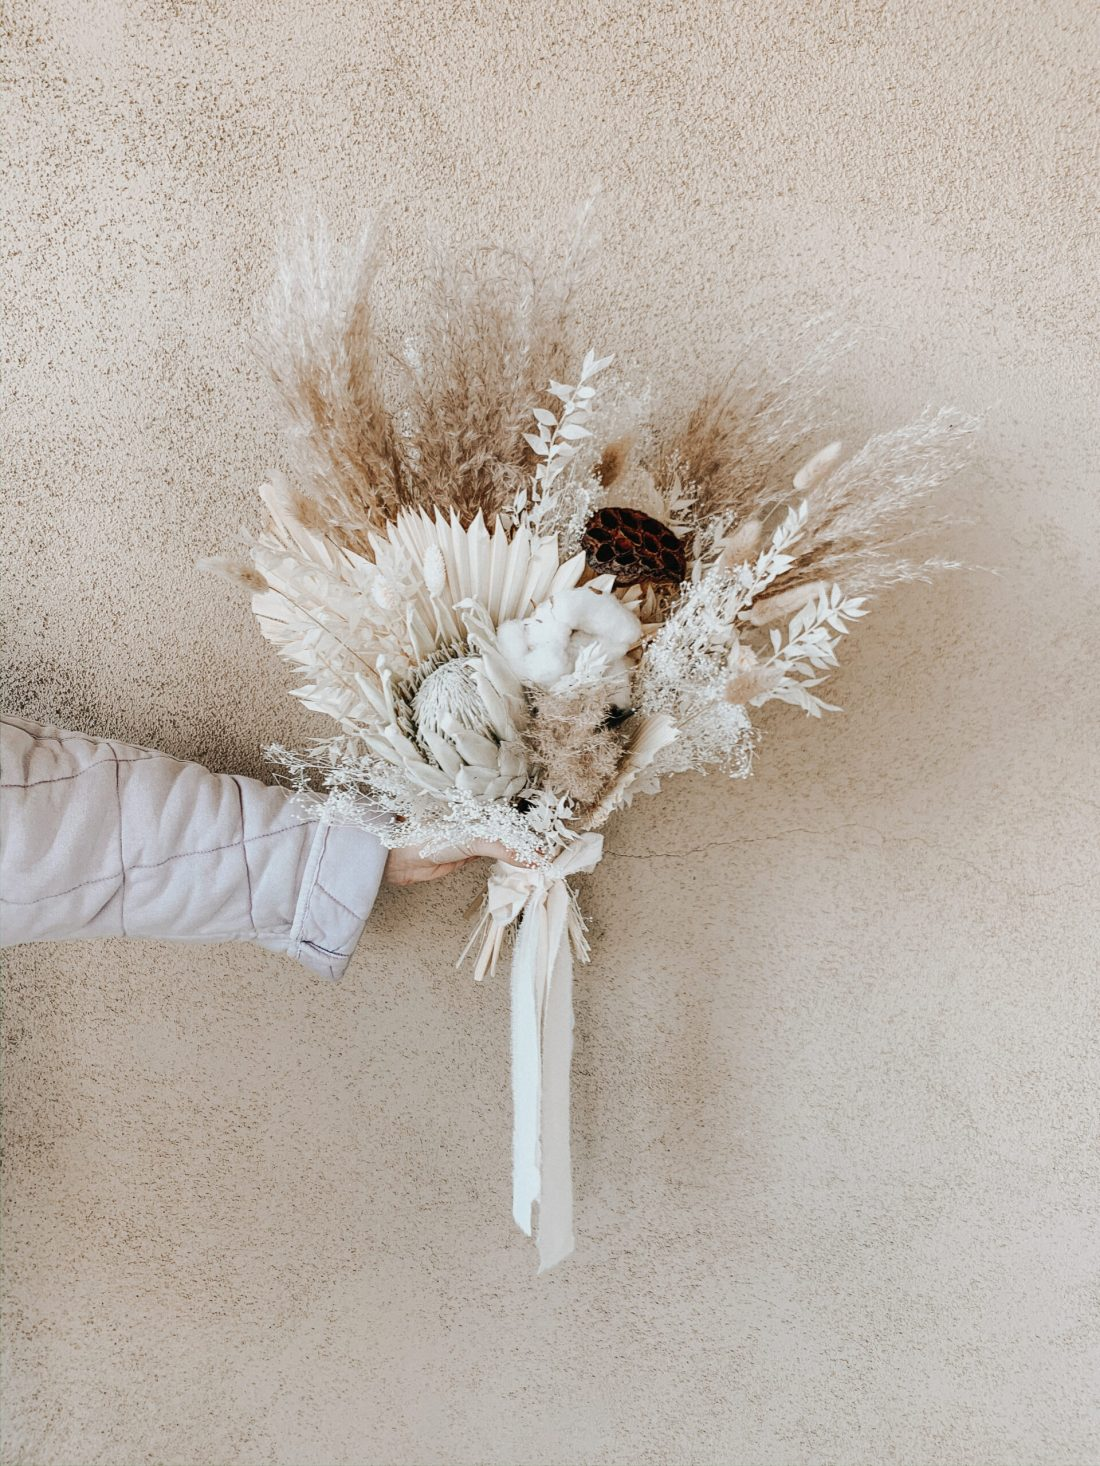 Where to find flowers for dried flower arrangements and the best flowers to choose. Pampas grass, bunny tail and protea flower arrangements || Darling Darleen Top Lifestyle Connecticut Blogger #driedflowerarrangments